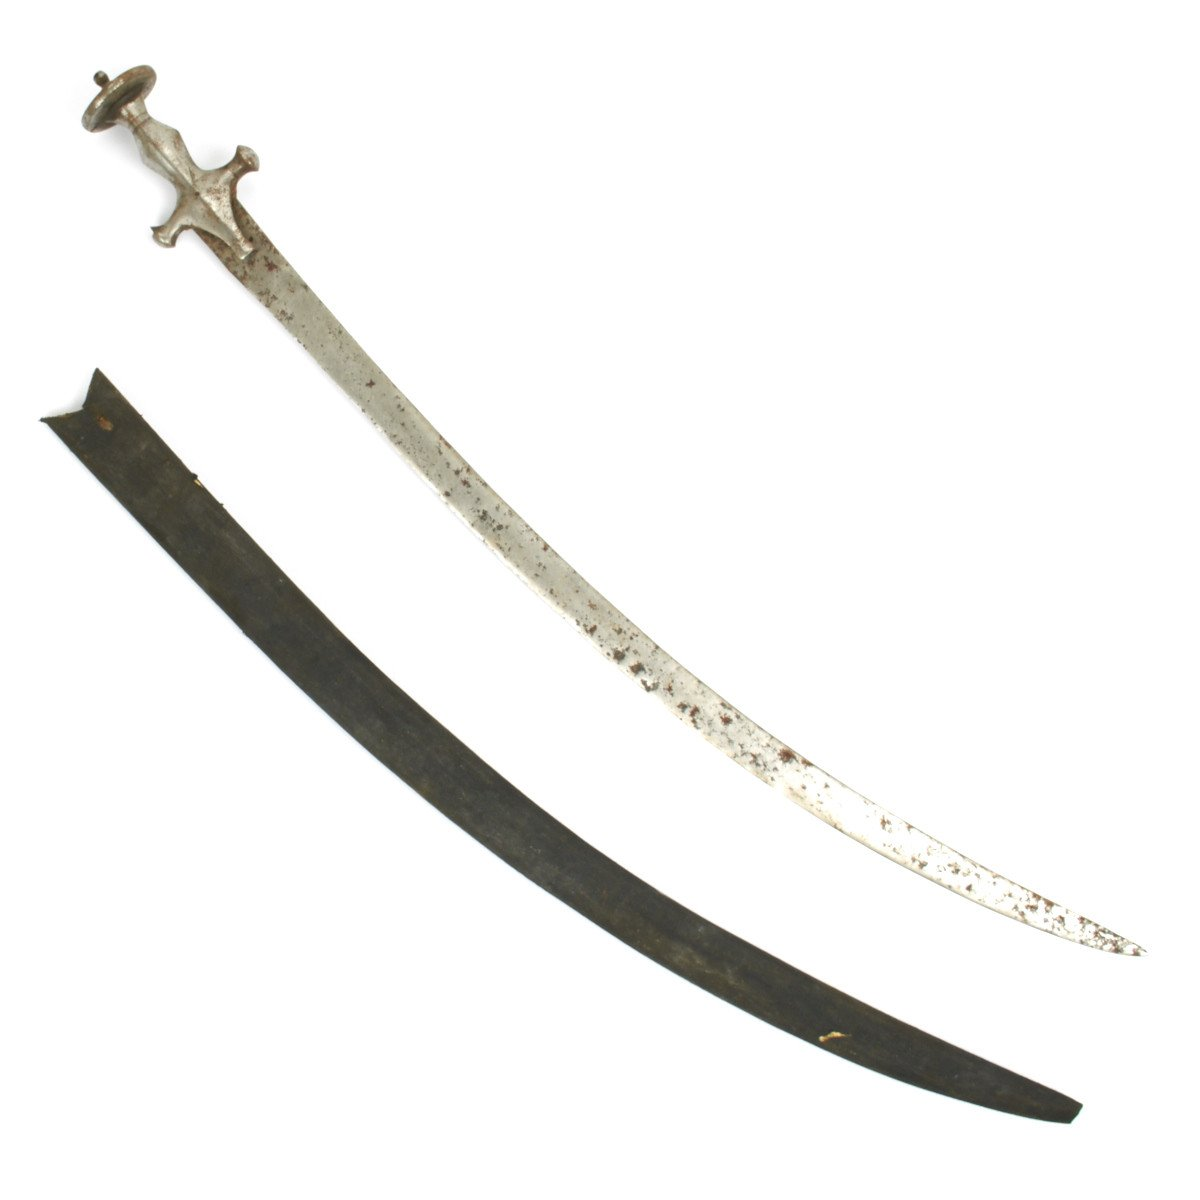 Original Indian Early 19th Century Tulwar Sword